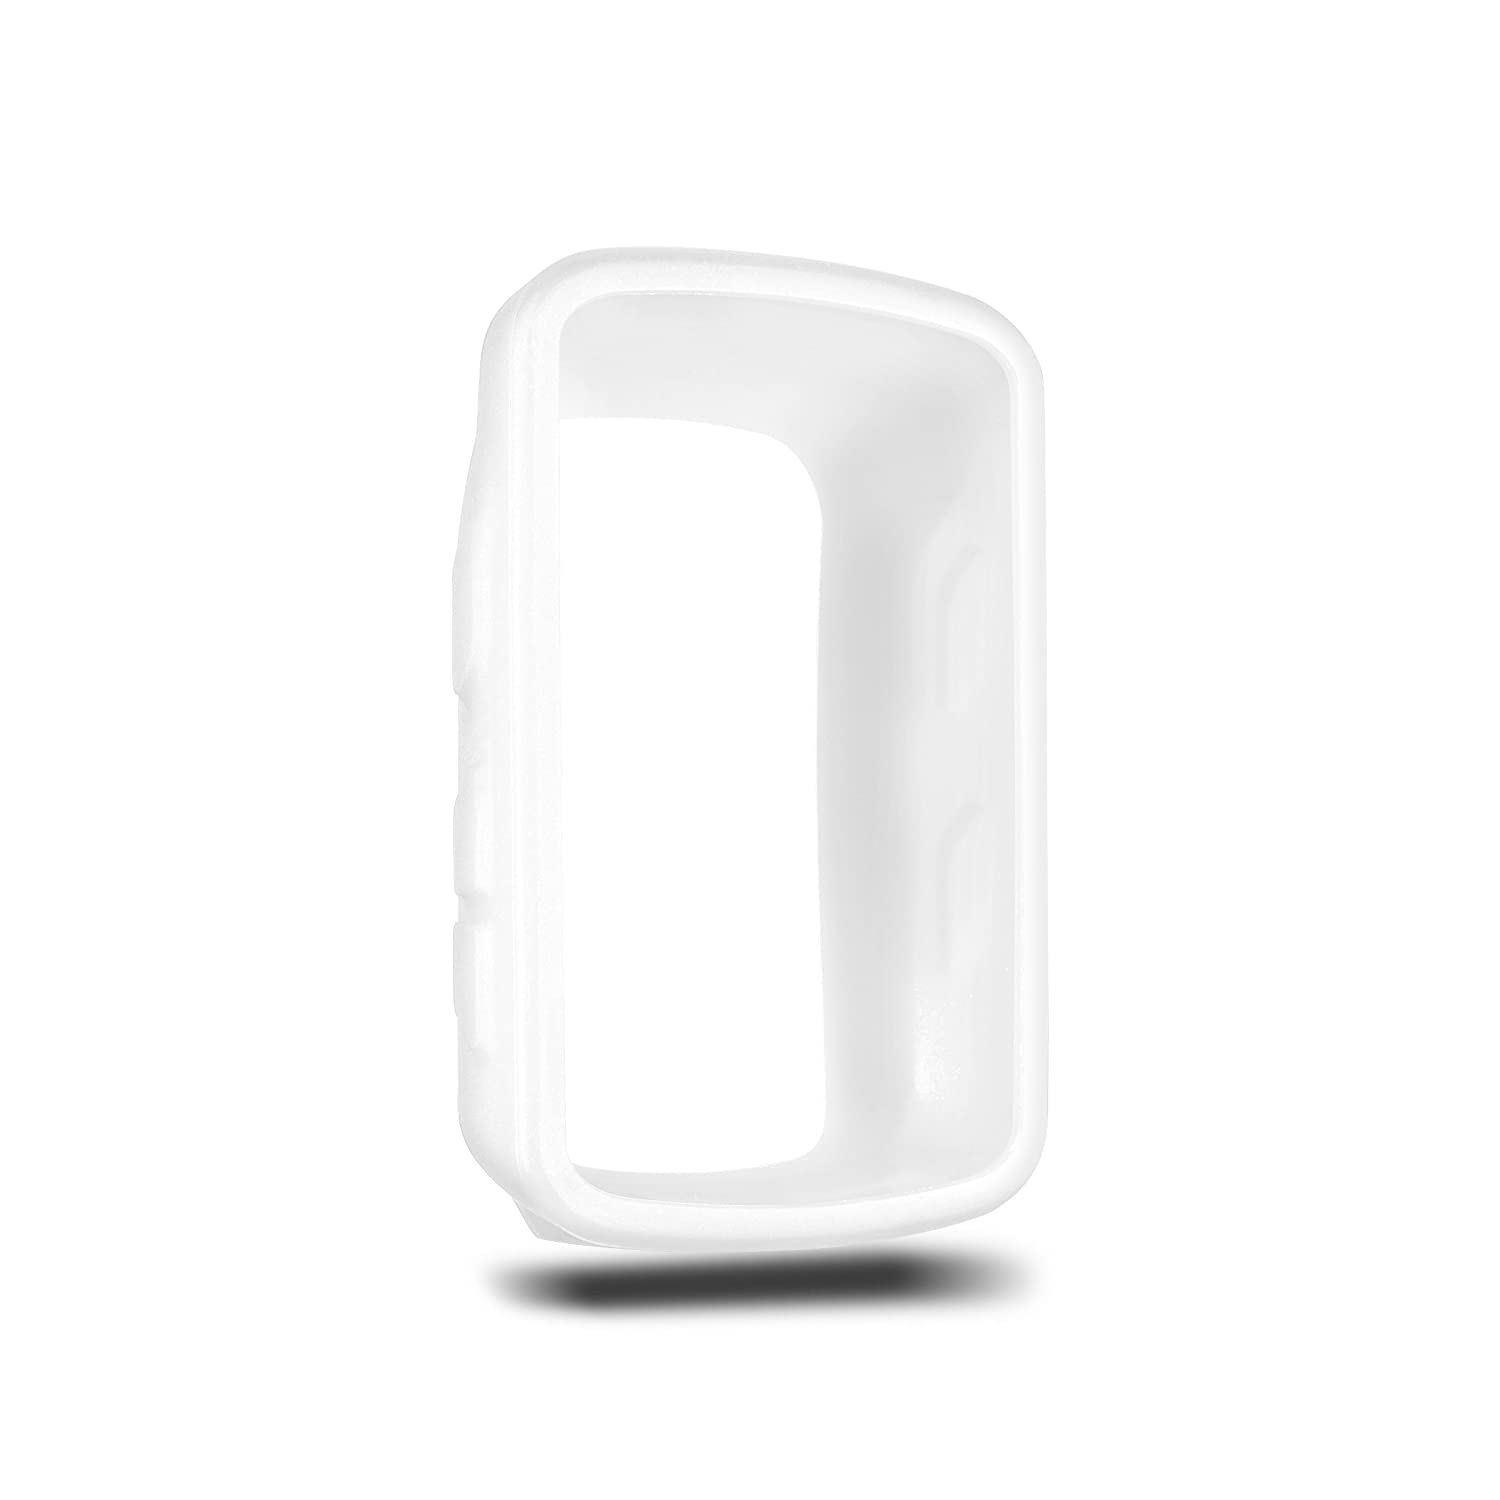 Garmin Edge 520 Silicone Case, White